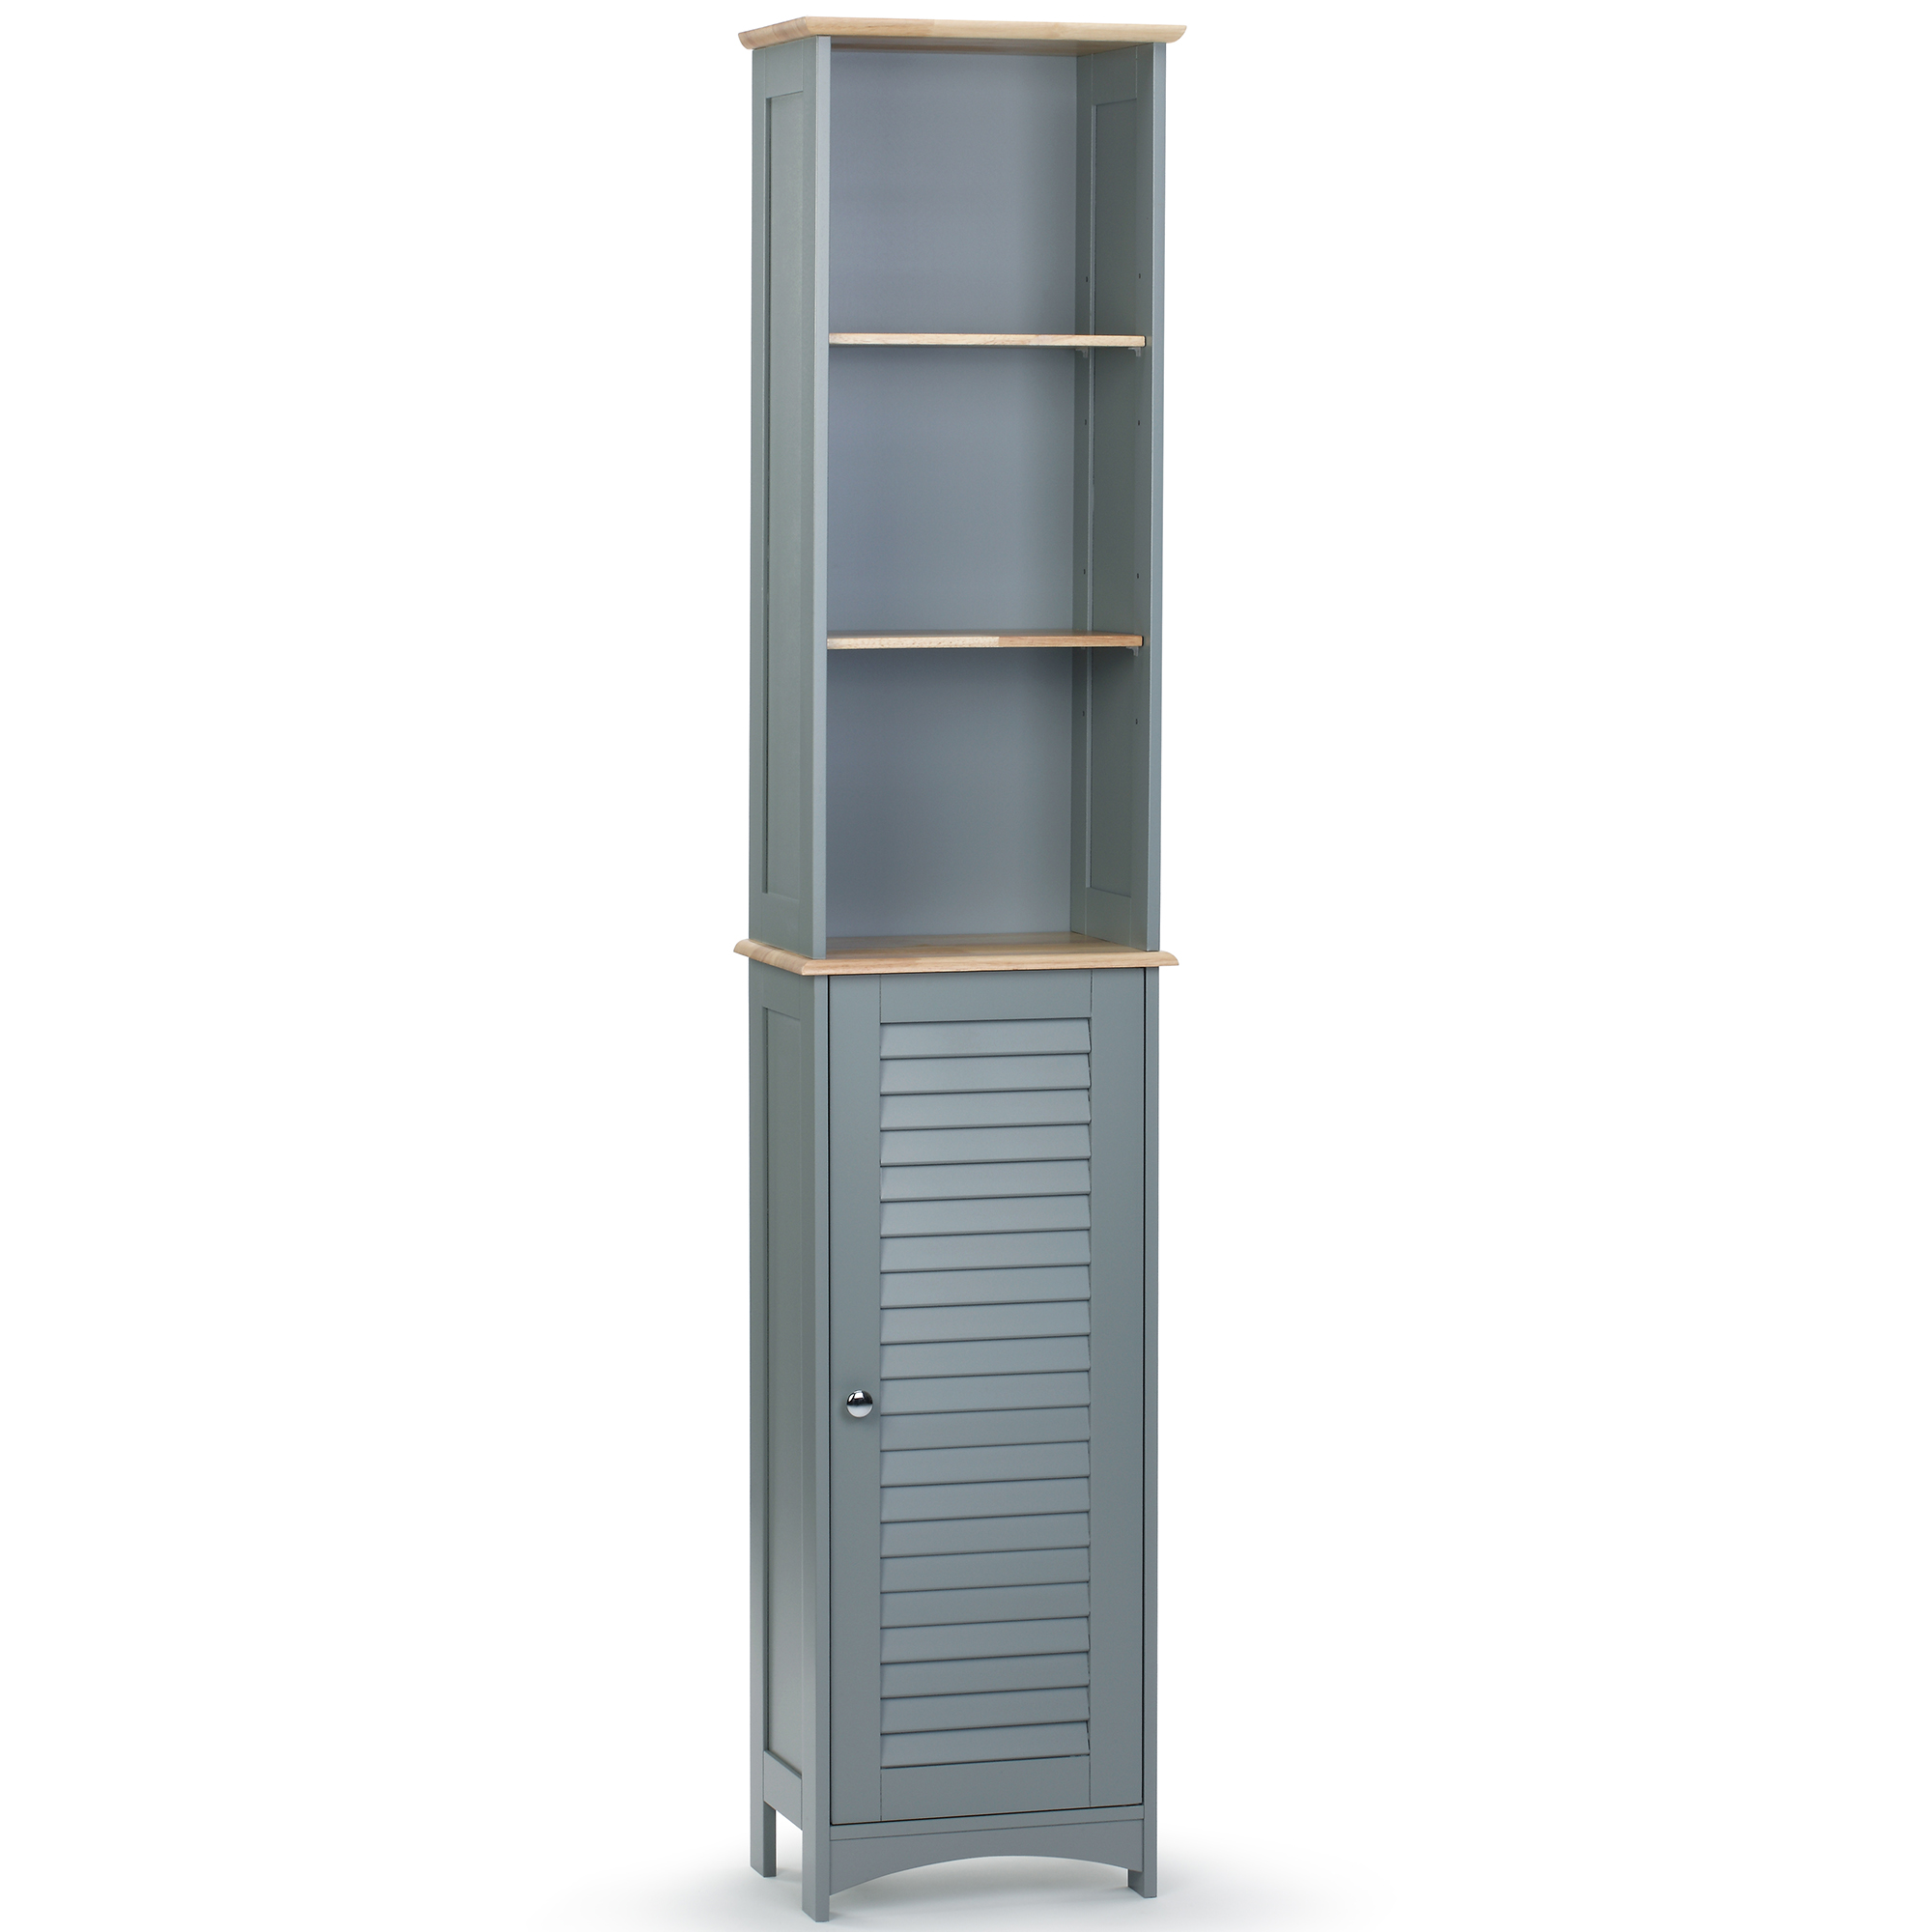 Vonhaus Tall Boy Bathroom Door Cabinet Space Saving